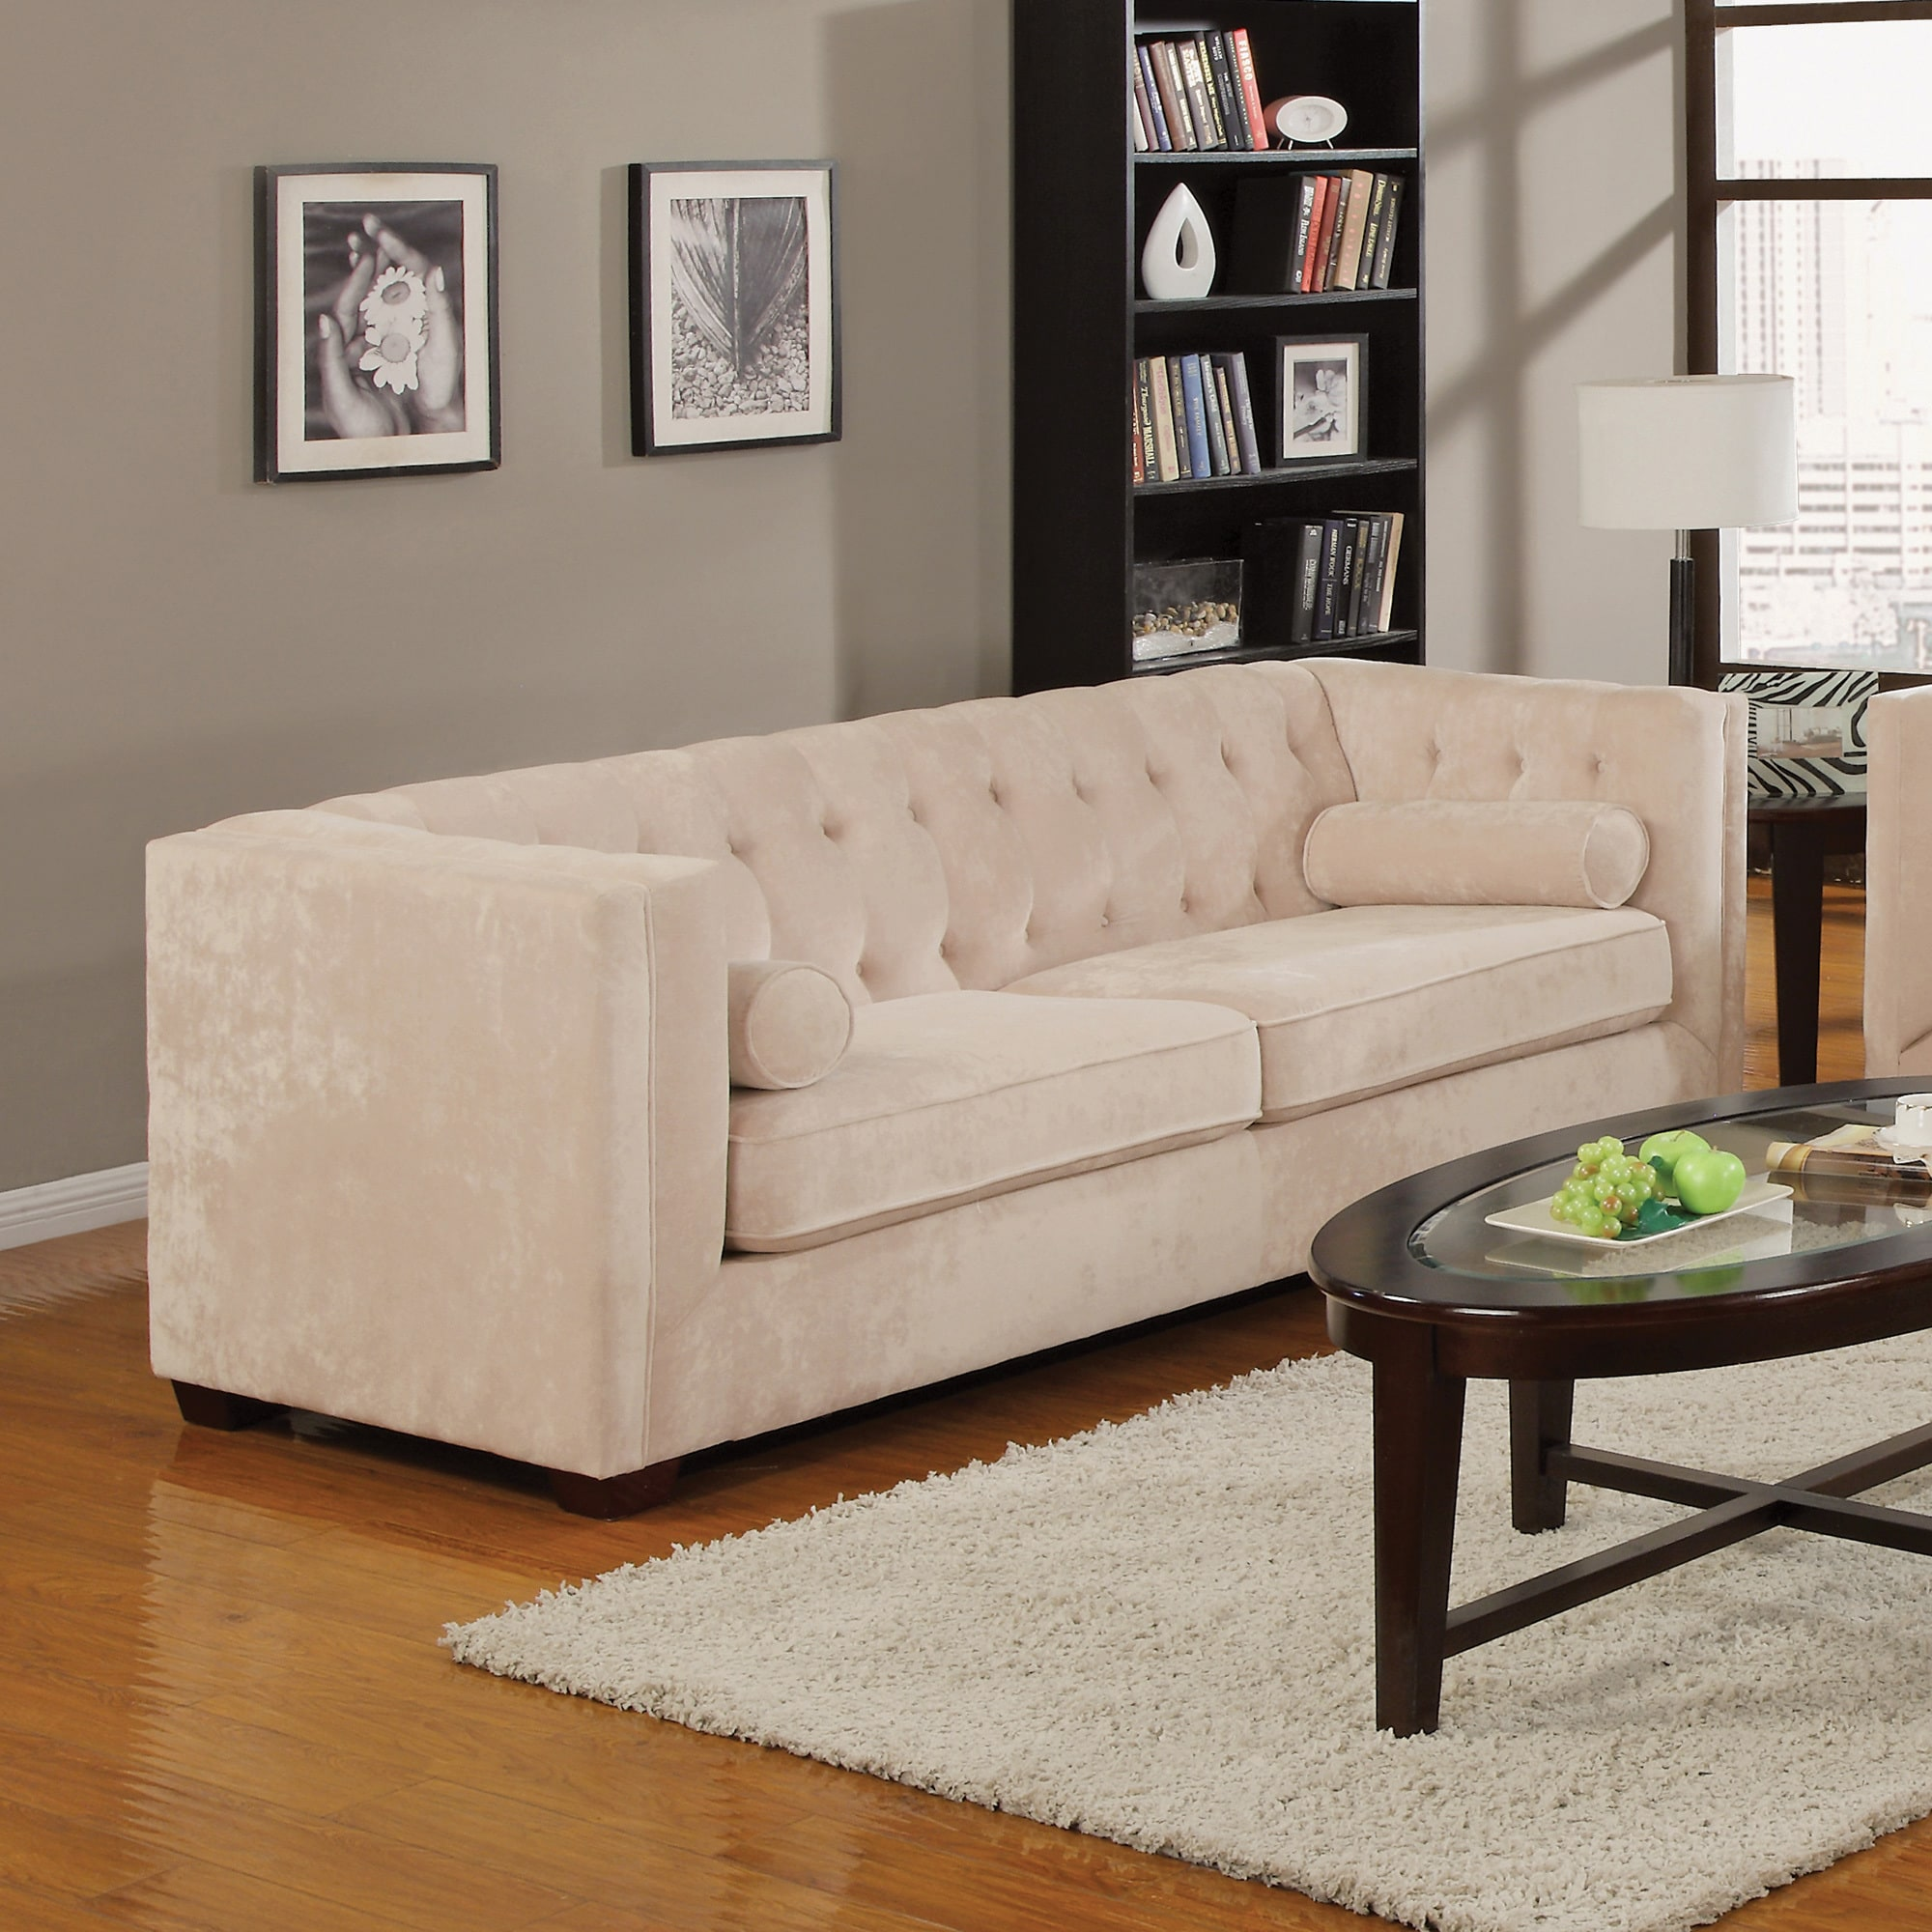 Great Beige Velvet Sofa 80 For Sofa Table Ideas with Beige Velvet Sofa